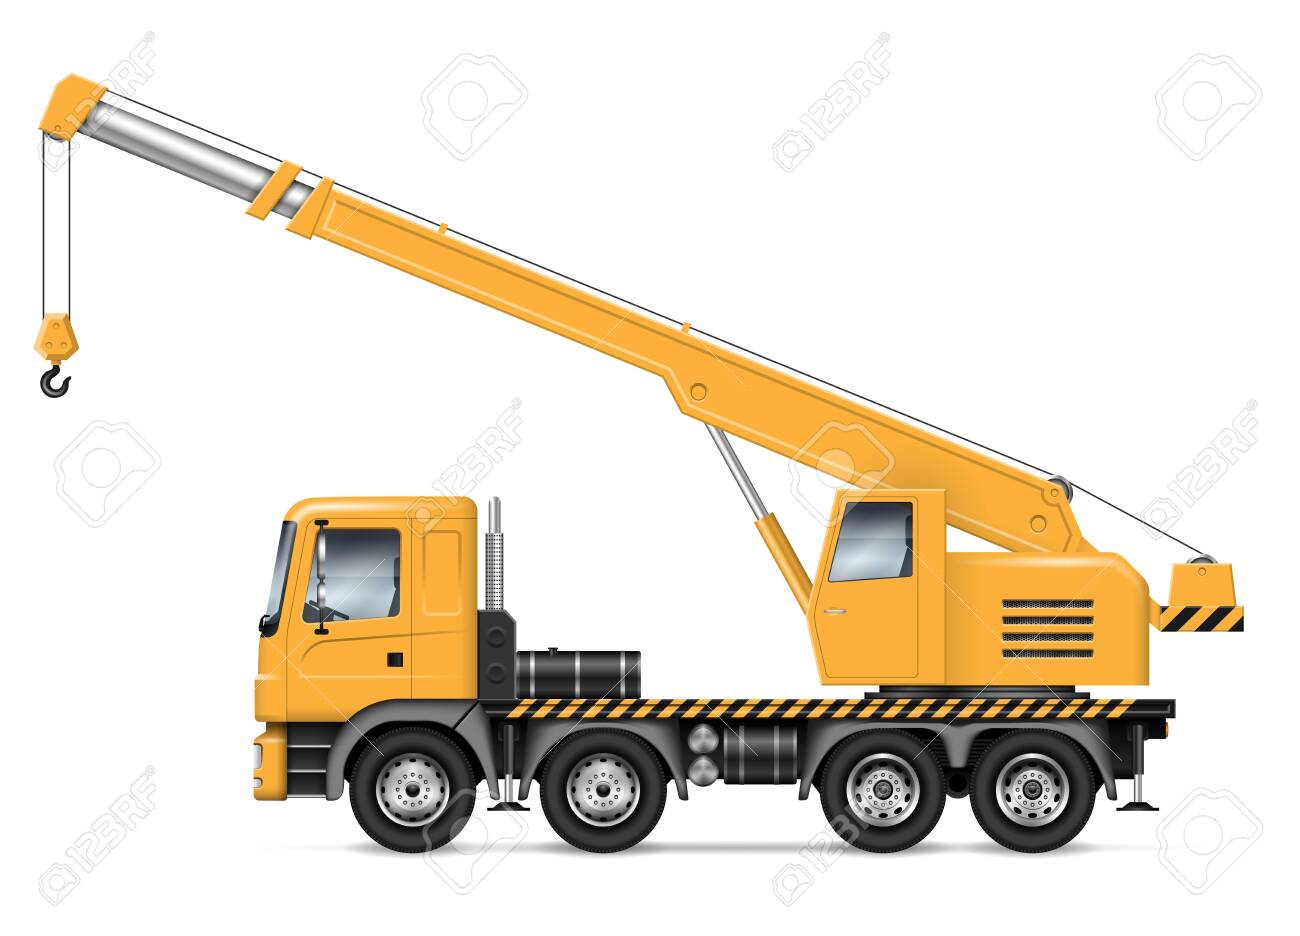 crane truck with view from side isolated on white background... royalty  free cliparts, vectors, and stock illustration. image 128422174.  123rf